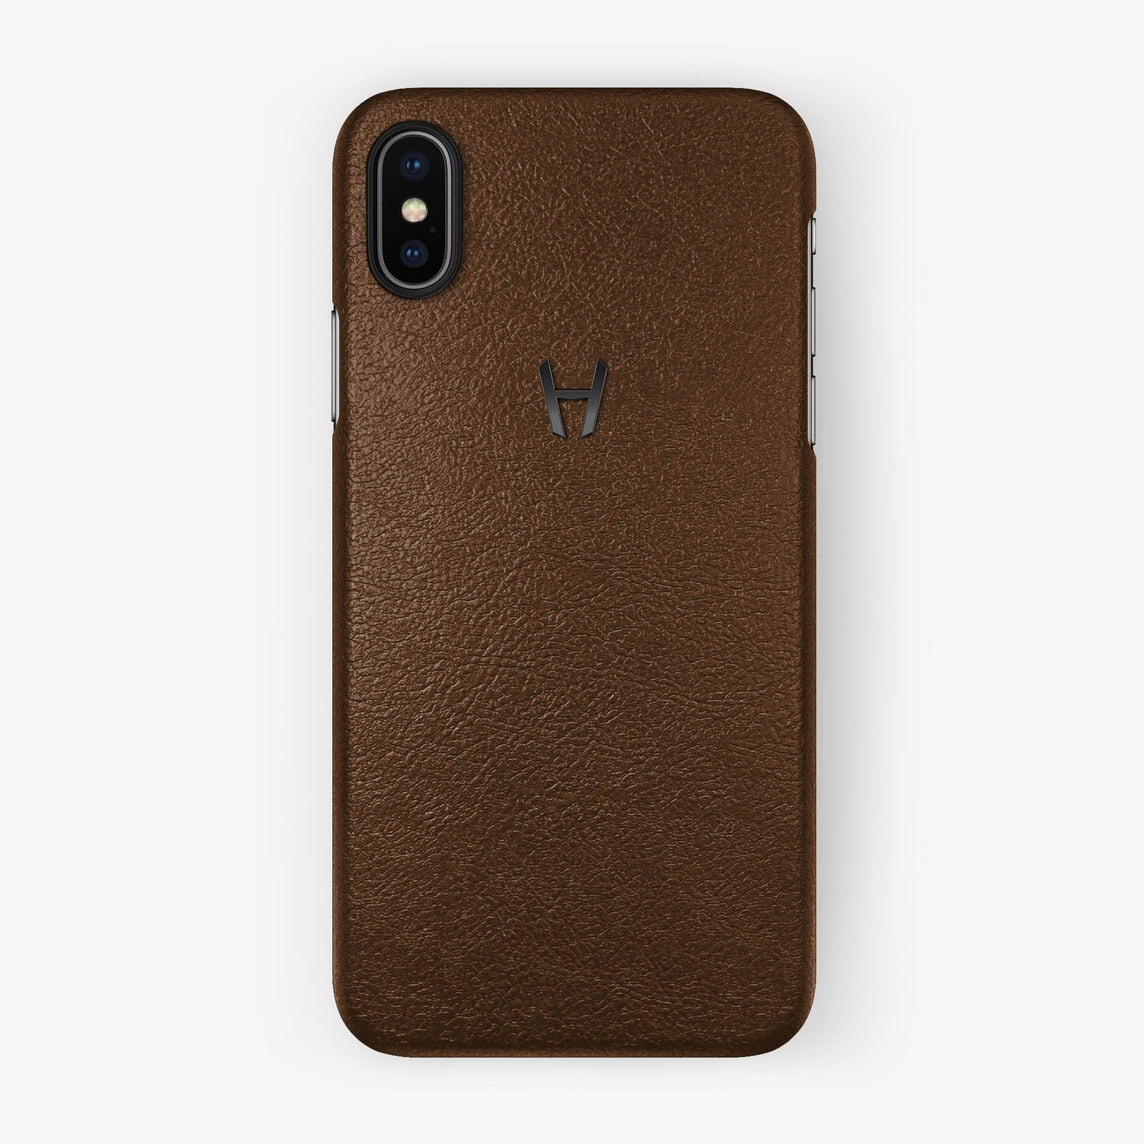 Brown Calfskin iPhone Case for iPhone X finishing black - Hadoro Luxury Cases